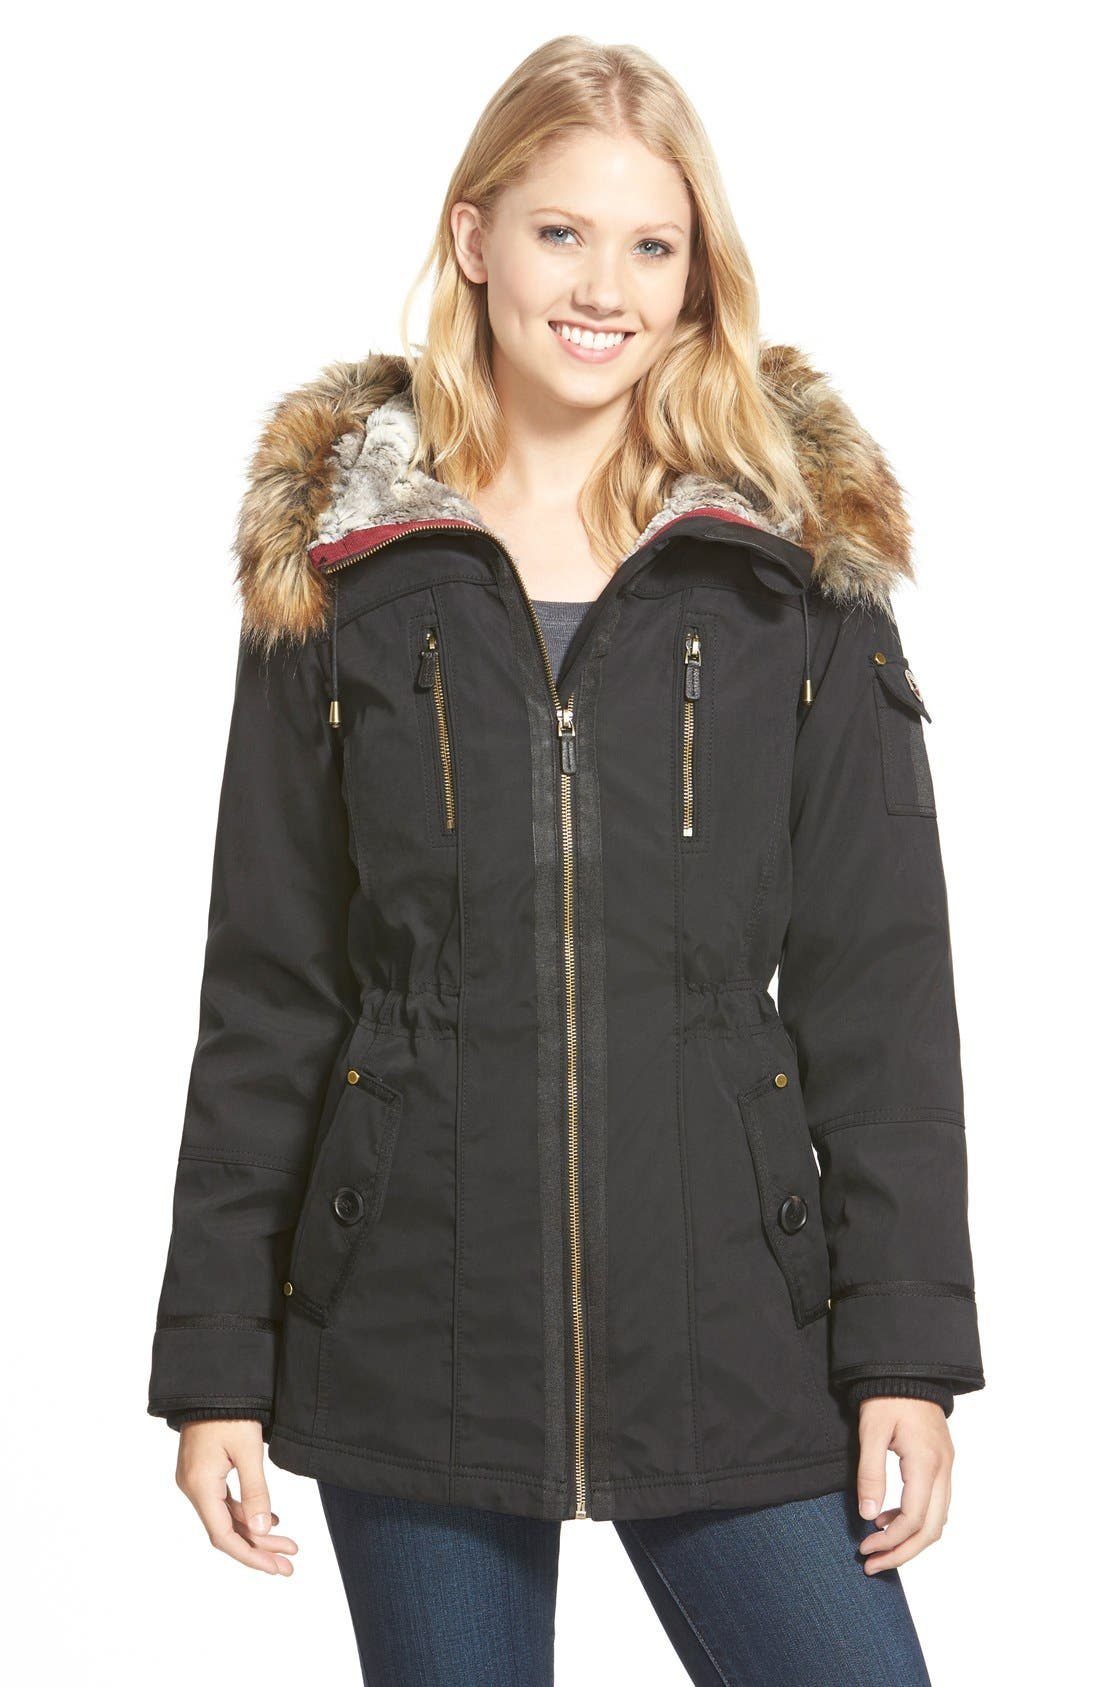 1 MADISON Faux Fur Trim Parka, Main, color, 001